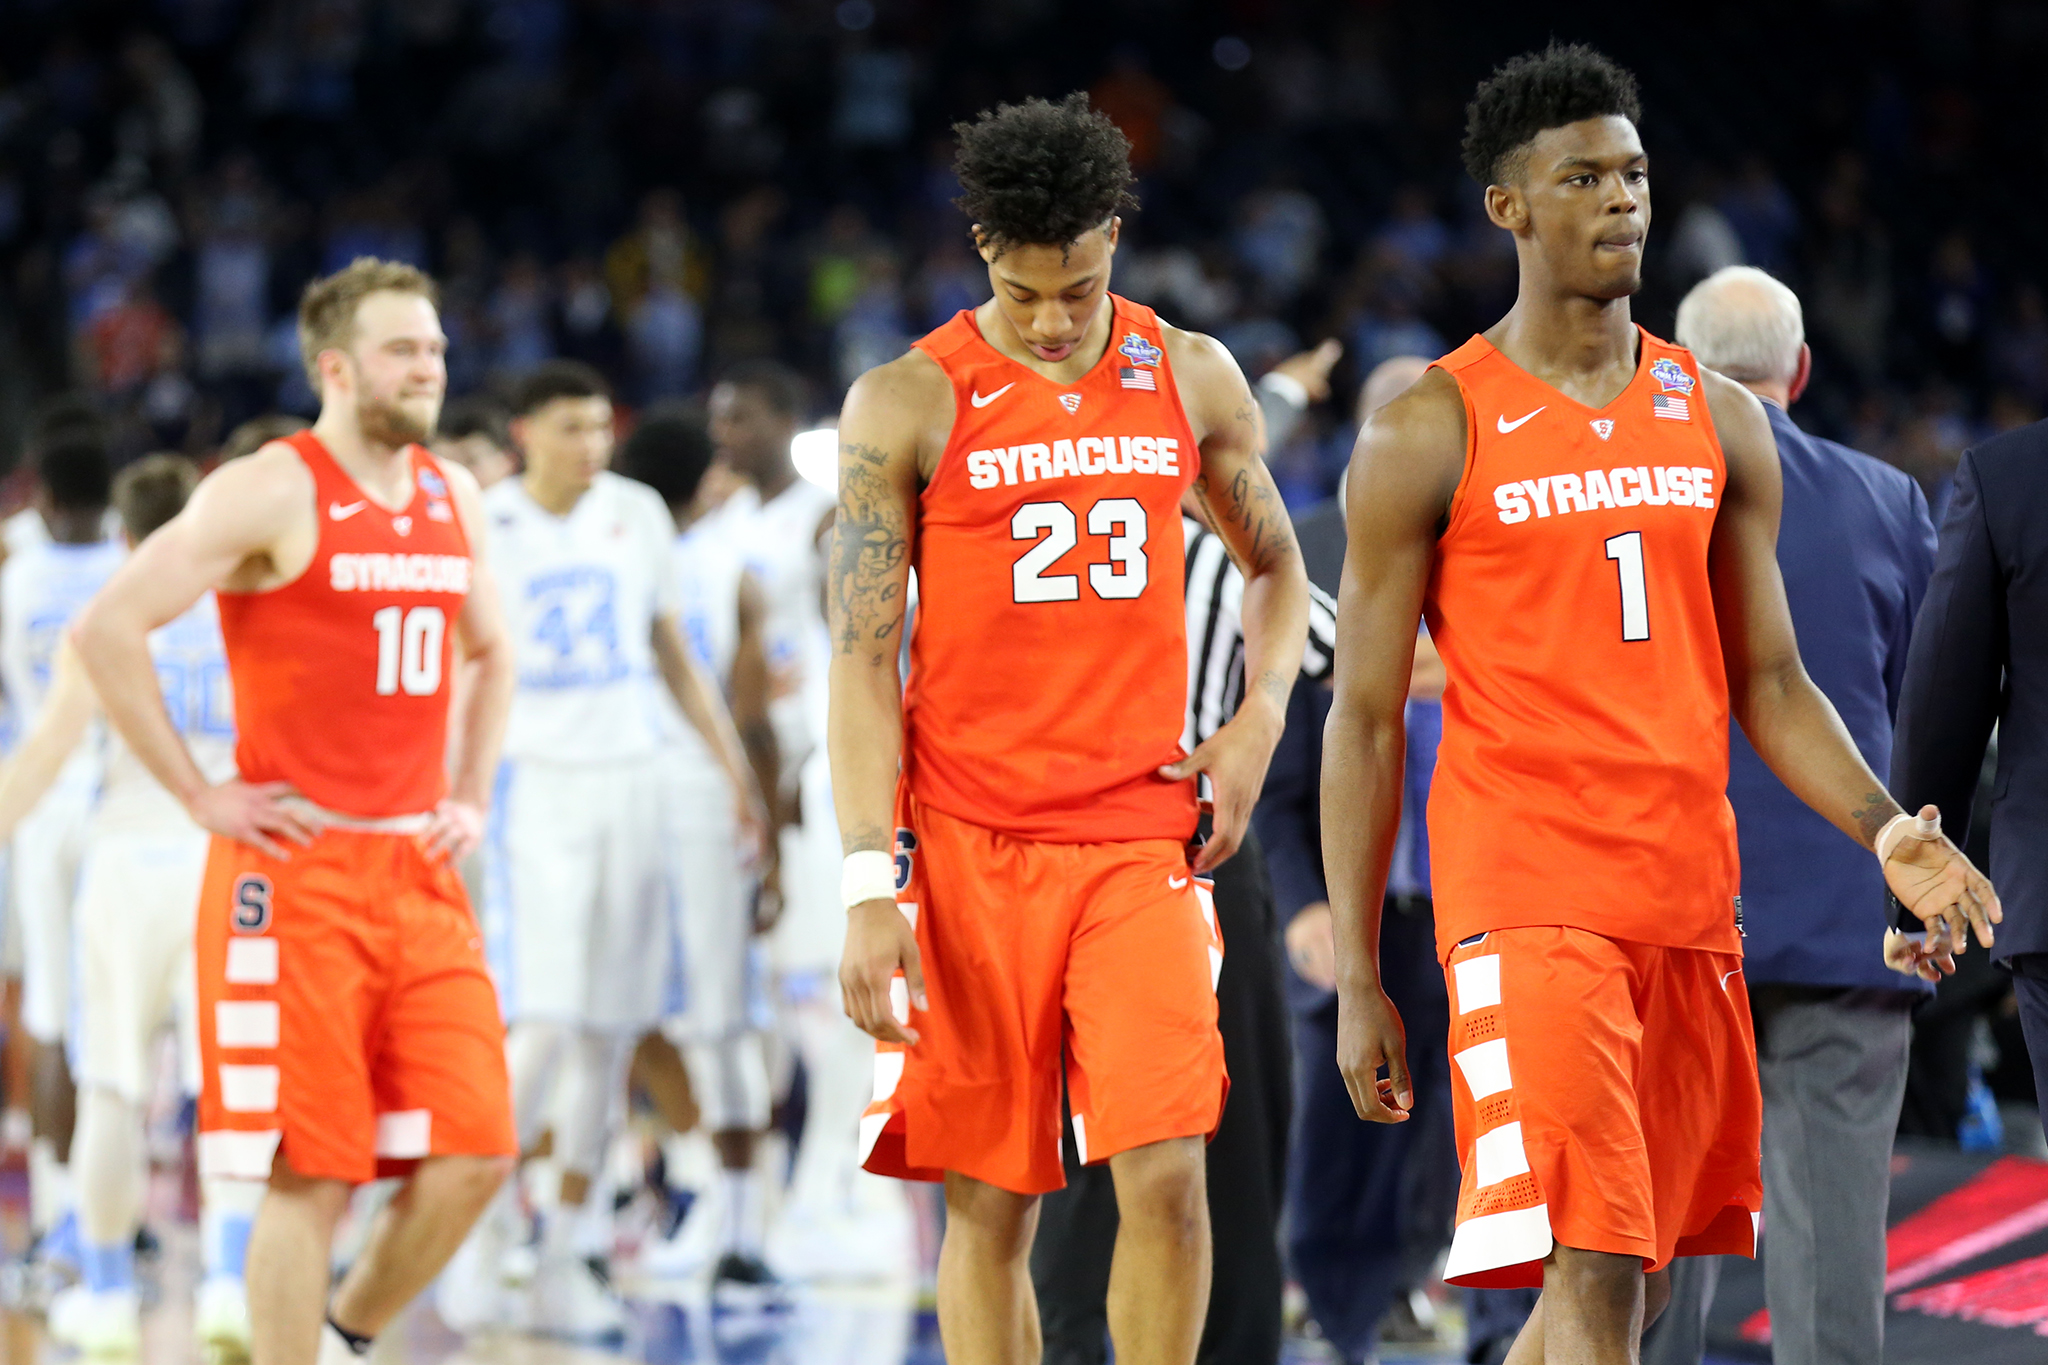 Syracuse Basketball Season Ends With 83 66 Loss To North Carolina In